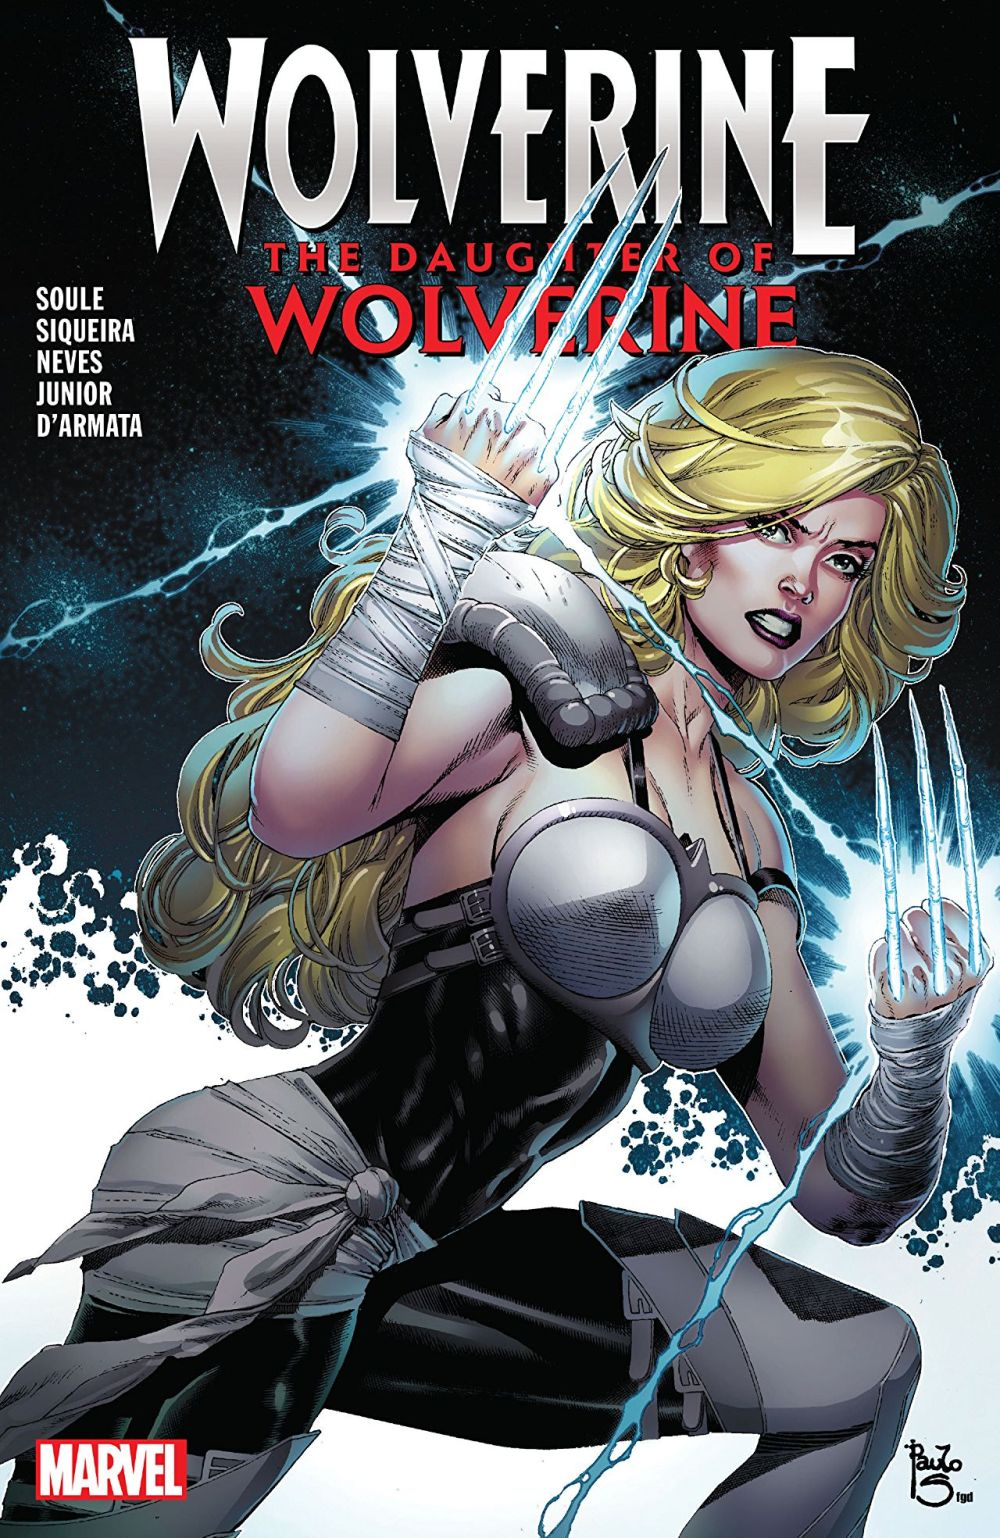 Wolverine: The Daughter of Wolverine review